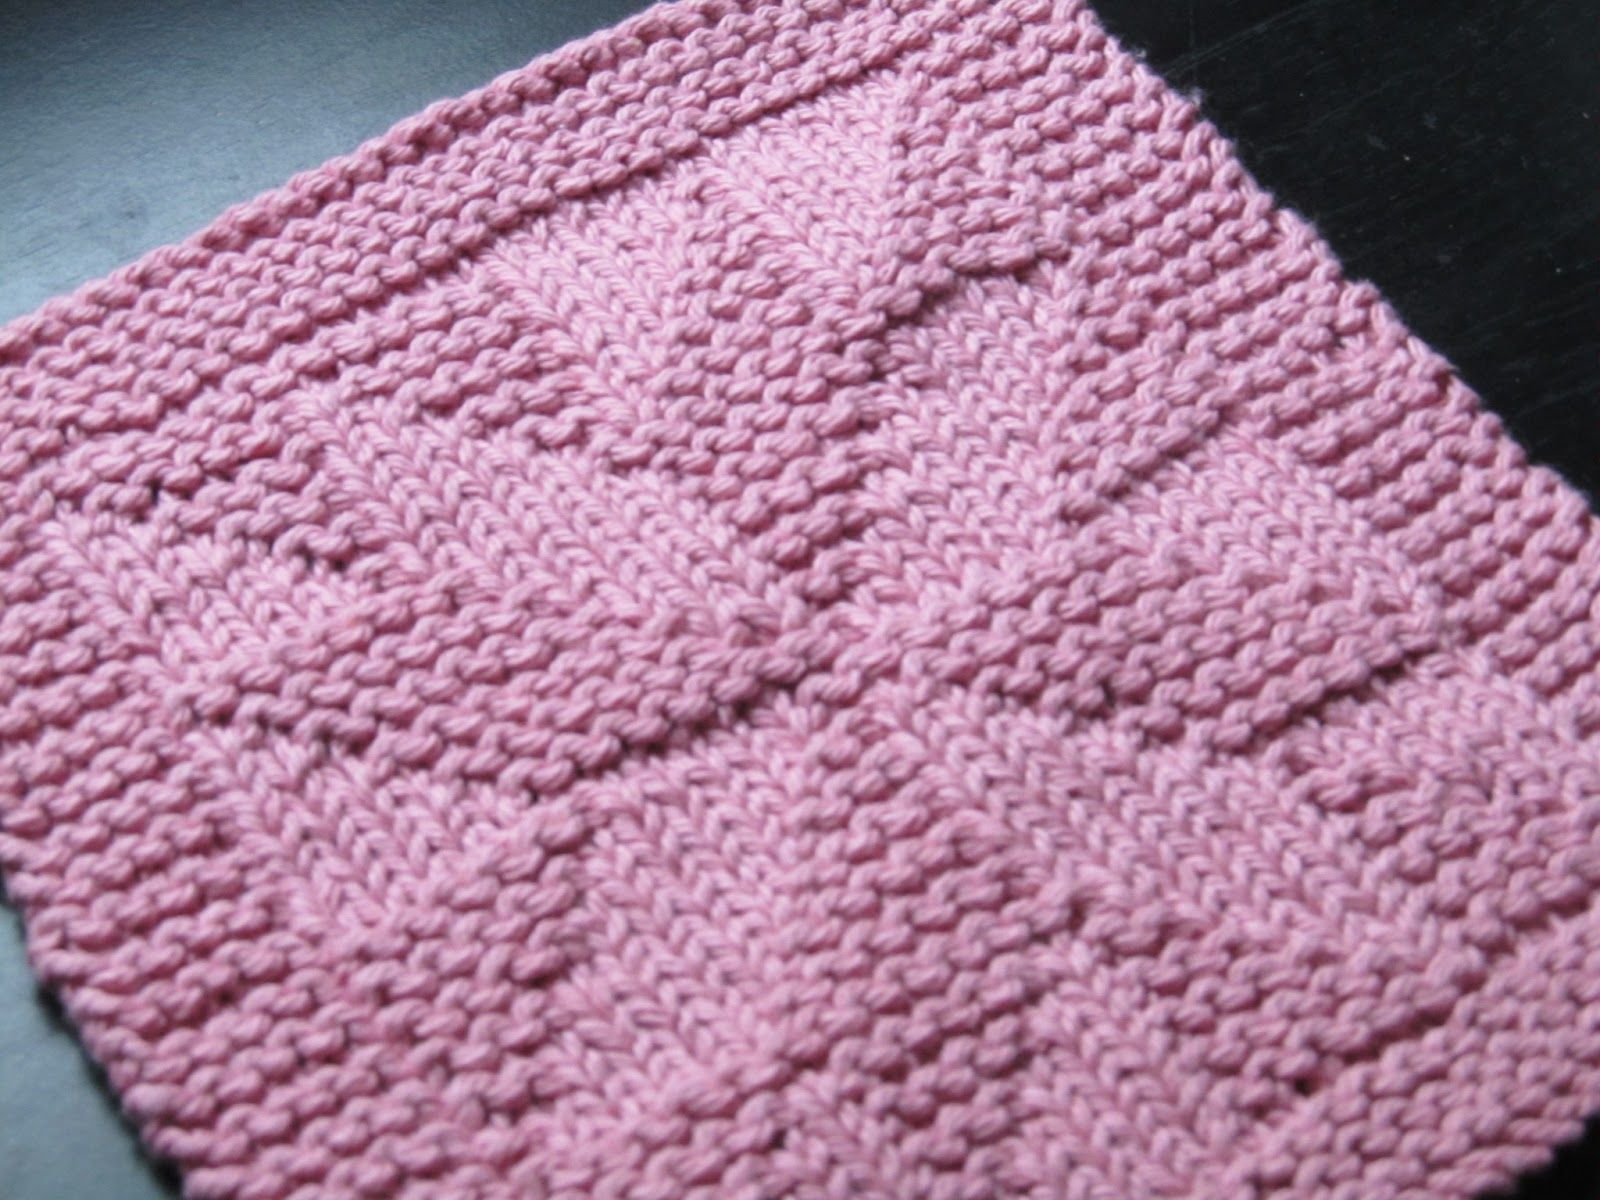 Washcloth Knitting Pattern Free Pin Knit Quilt Crochet Embroidery Beads On Knitted Dishcloth